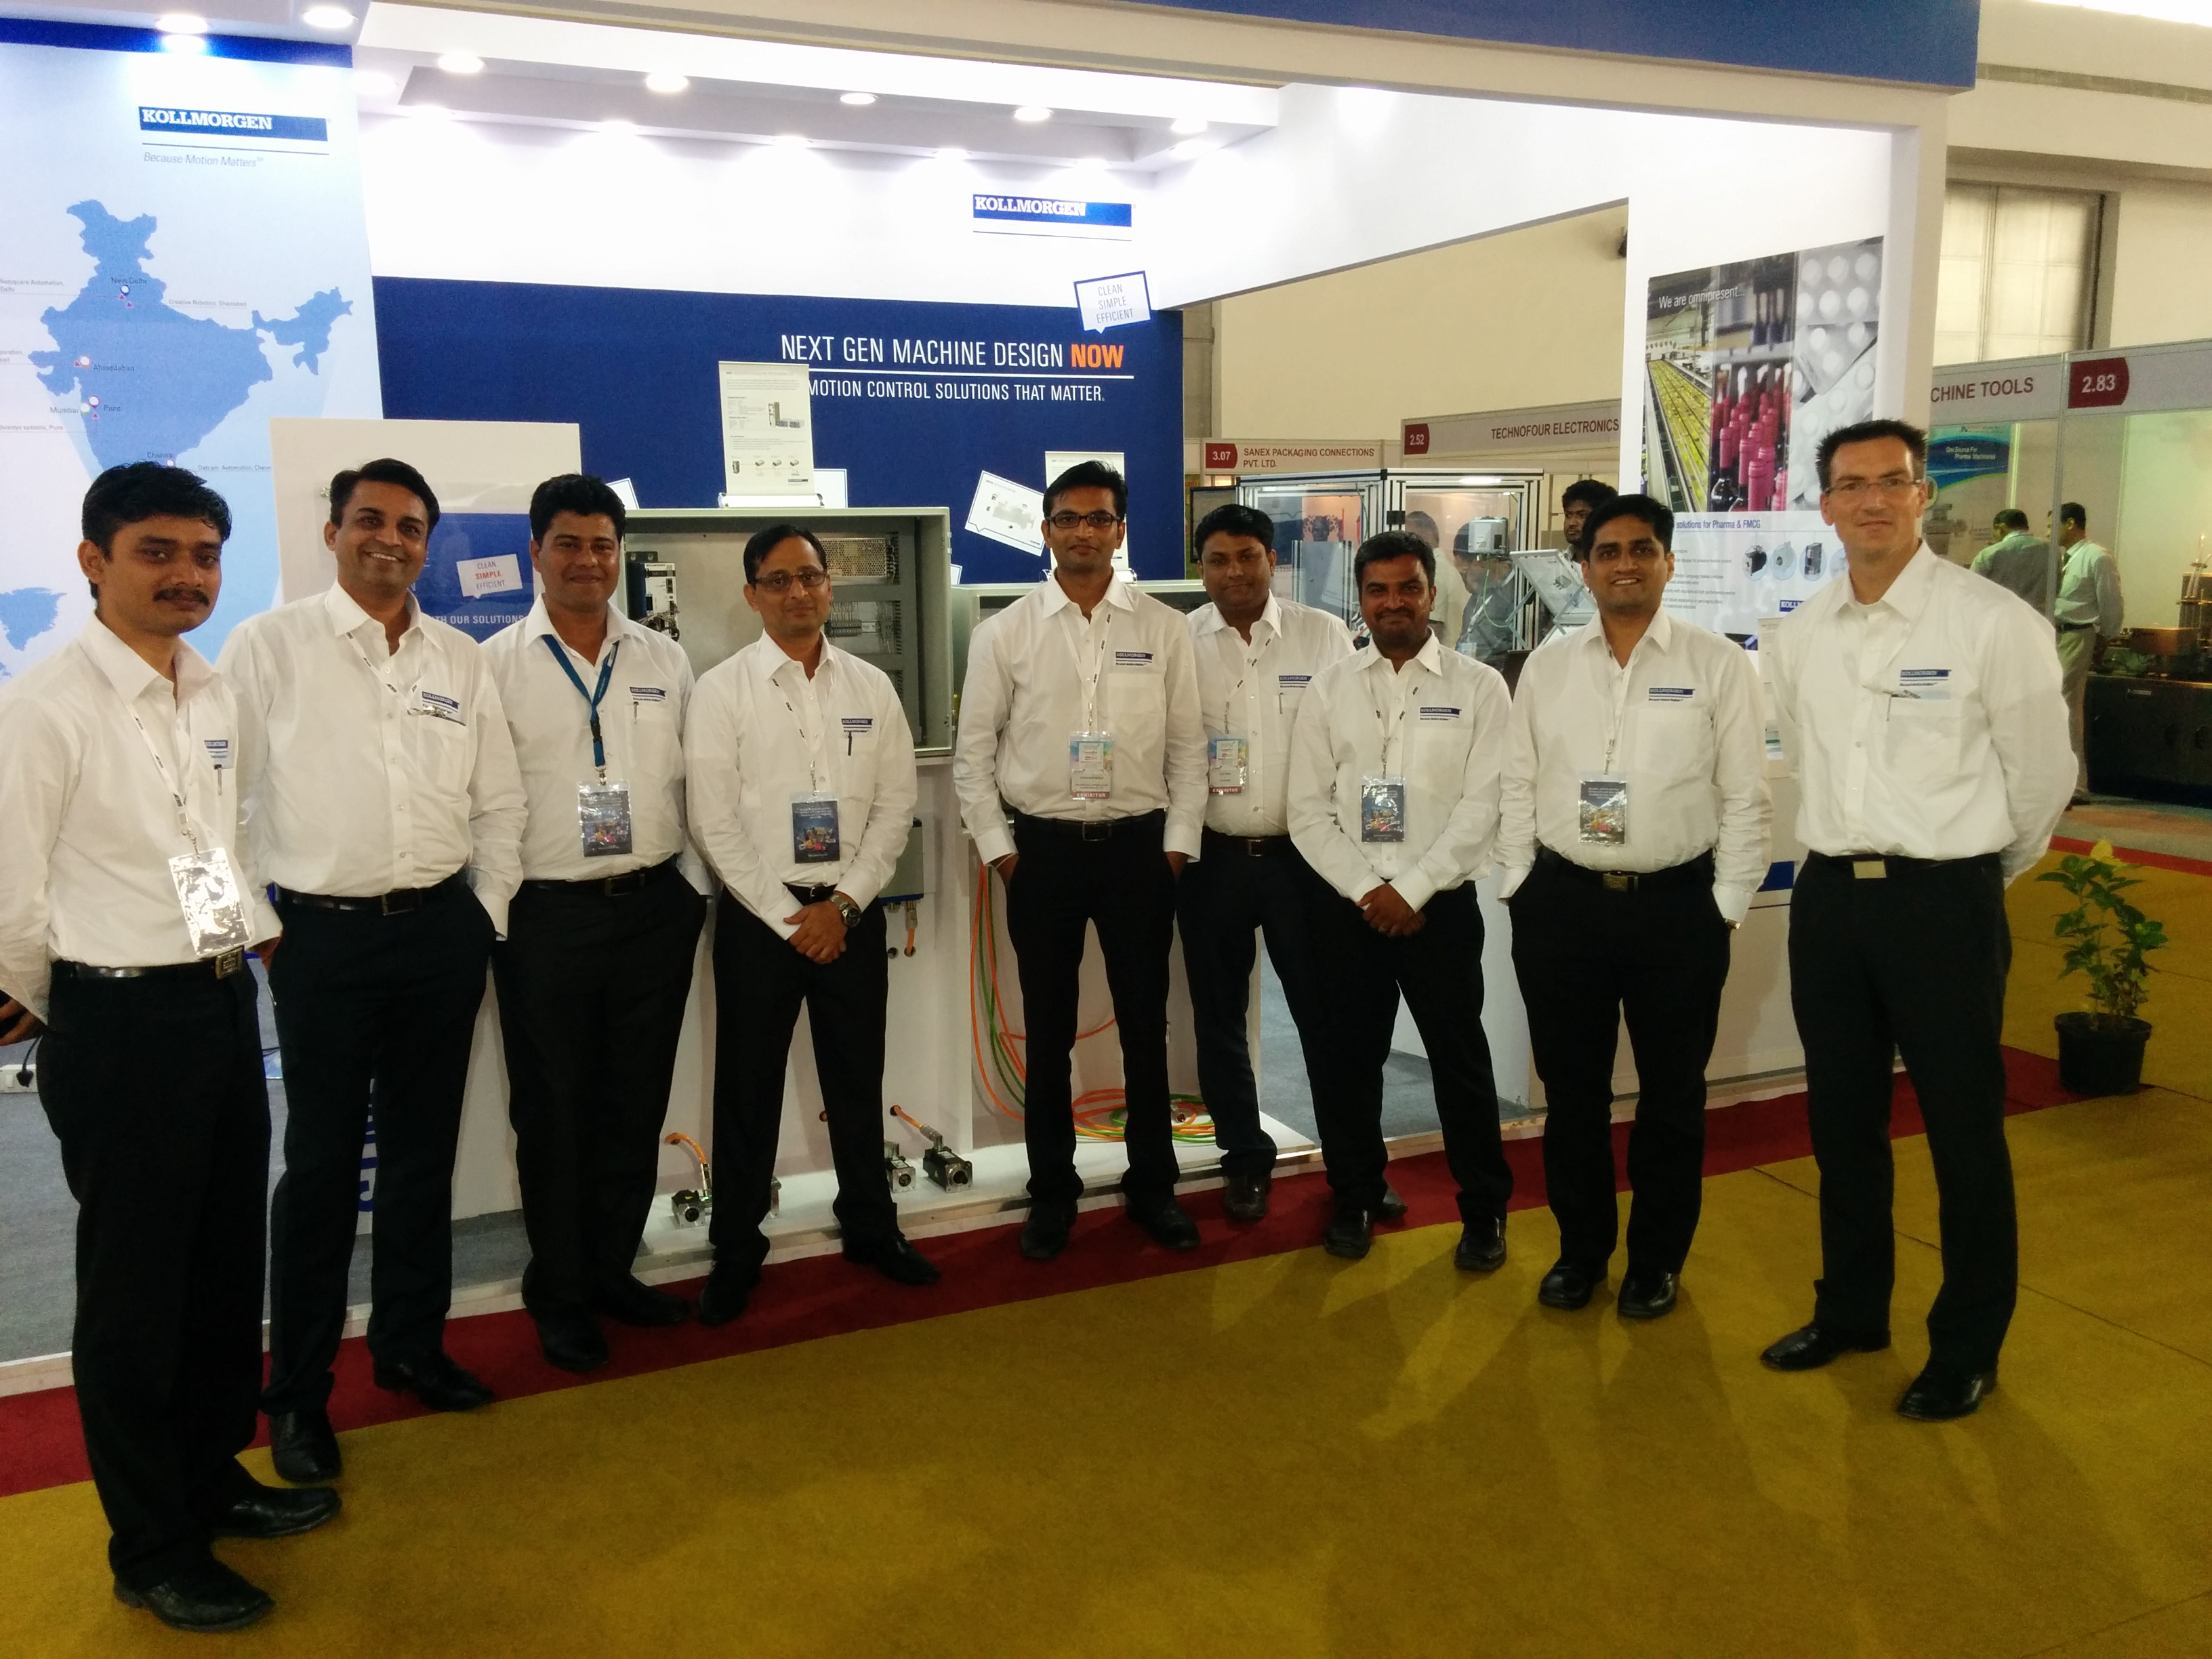 Kollmorgen India Team Ready for Show